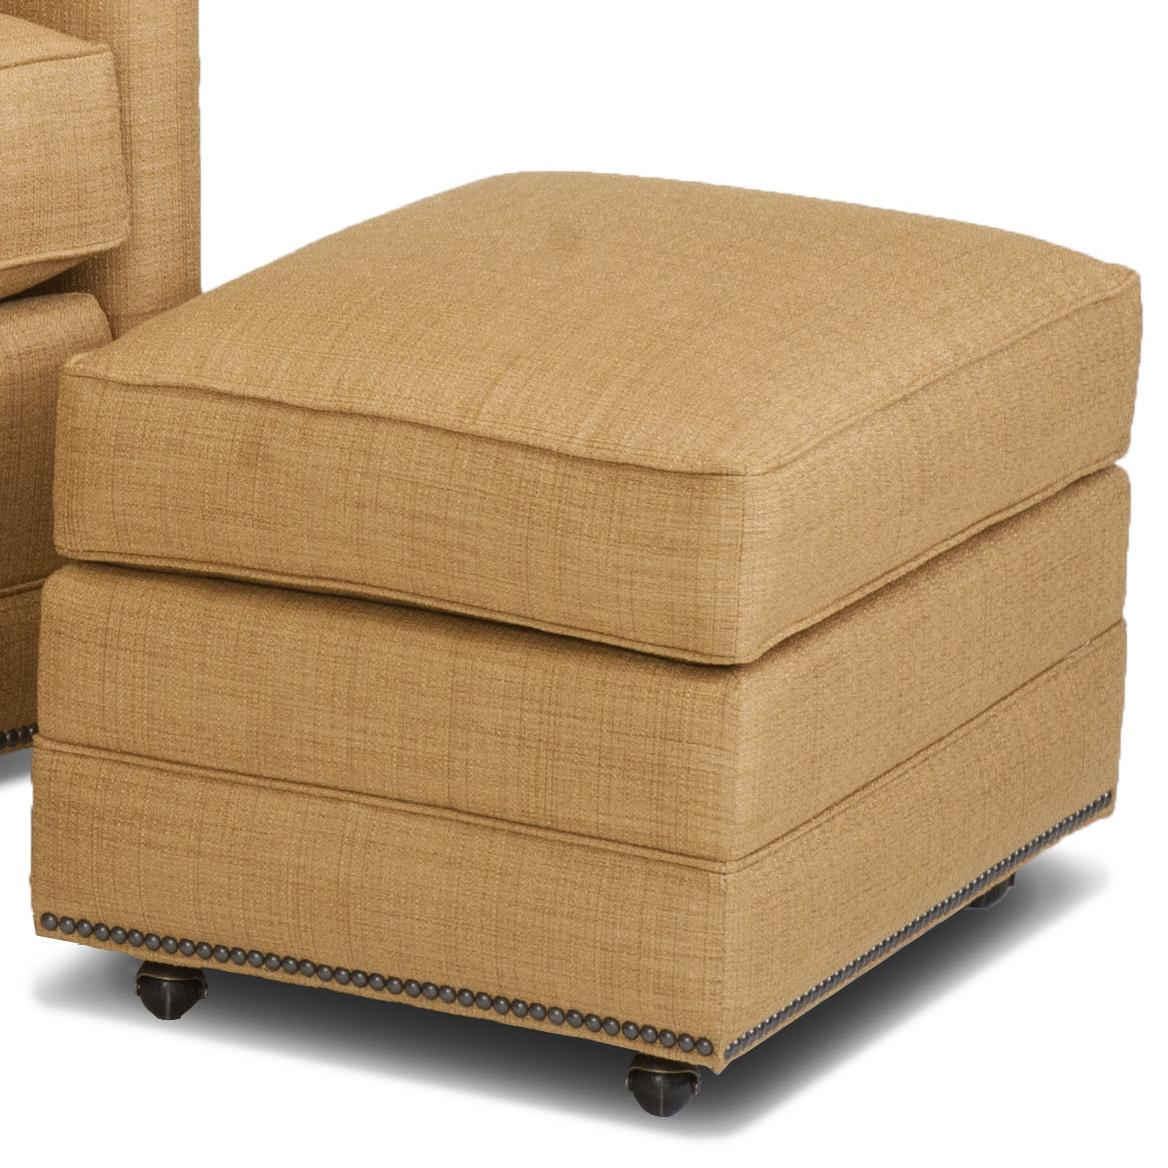 Accent Chairs and Ottomans SB Ottoman by Smith Brothers at Pilgrim Furniture City